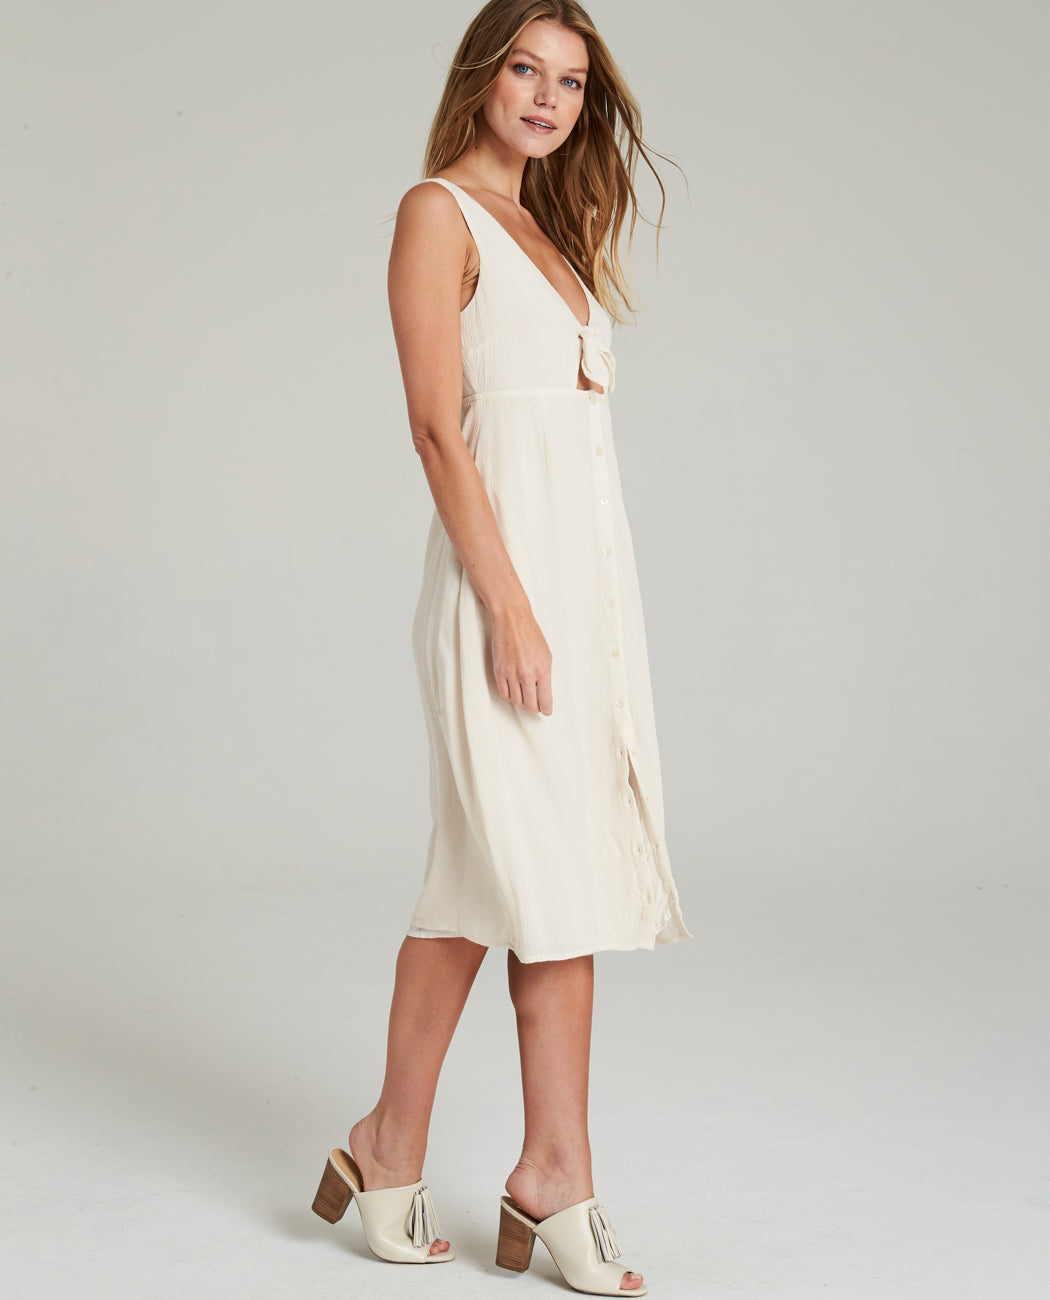 Gypsy05 Ameri Button Down Midi Dress